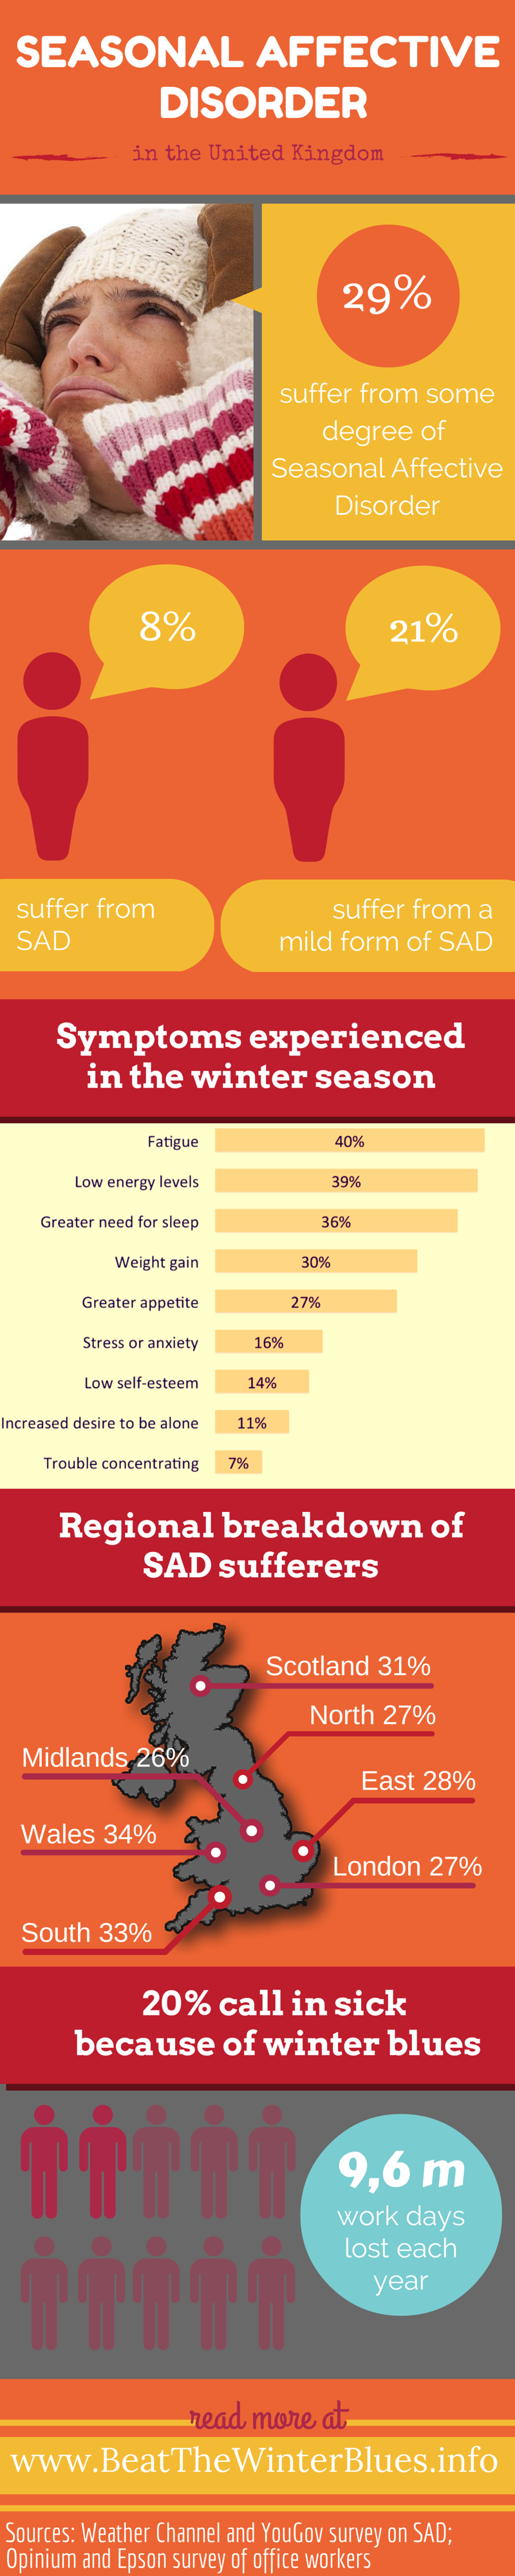 Infographic: Seasonal Affective Disorder in the United Kingdom